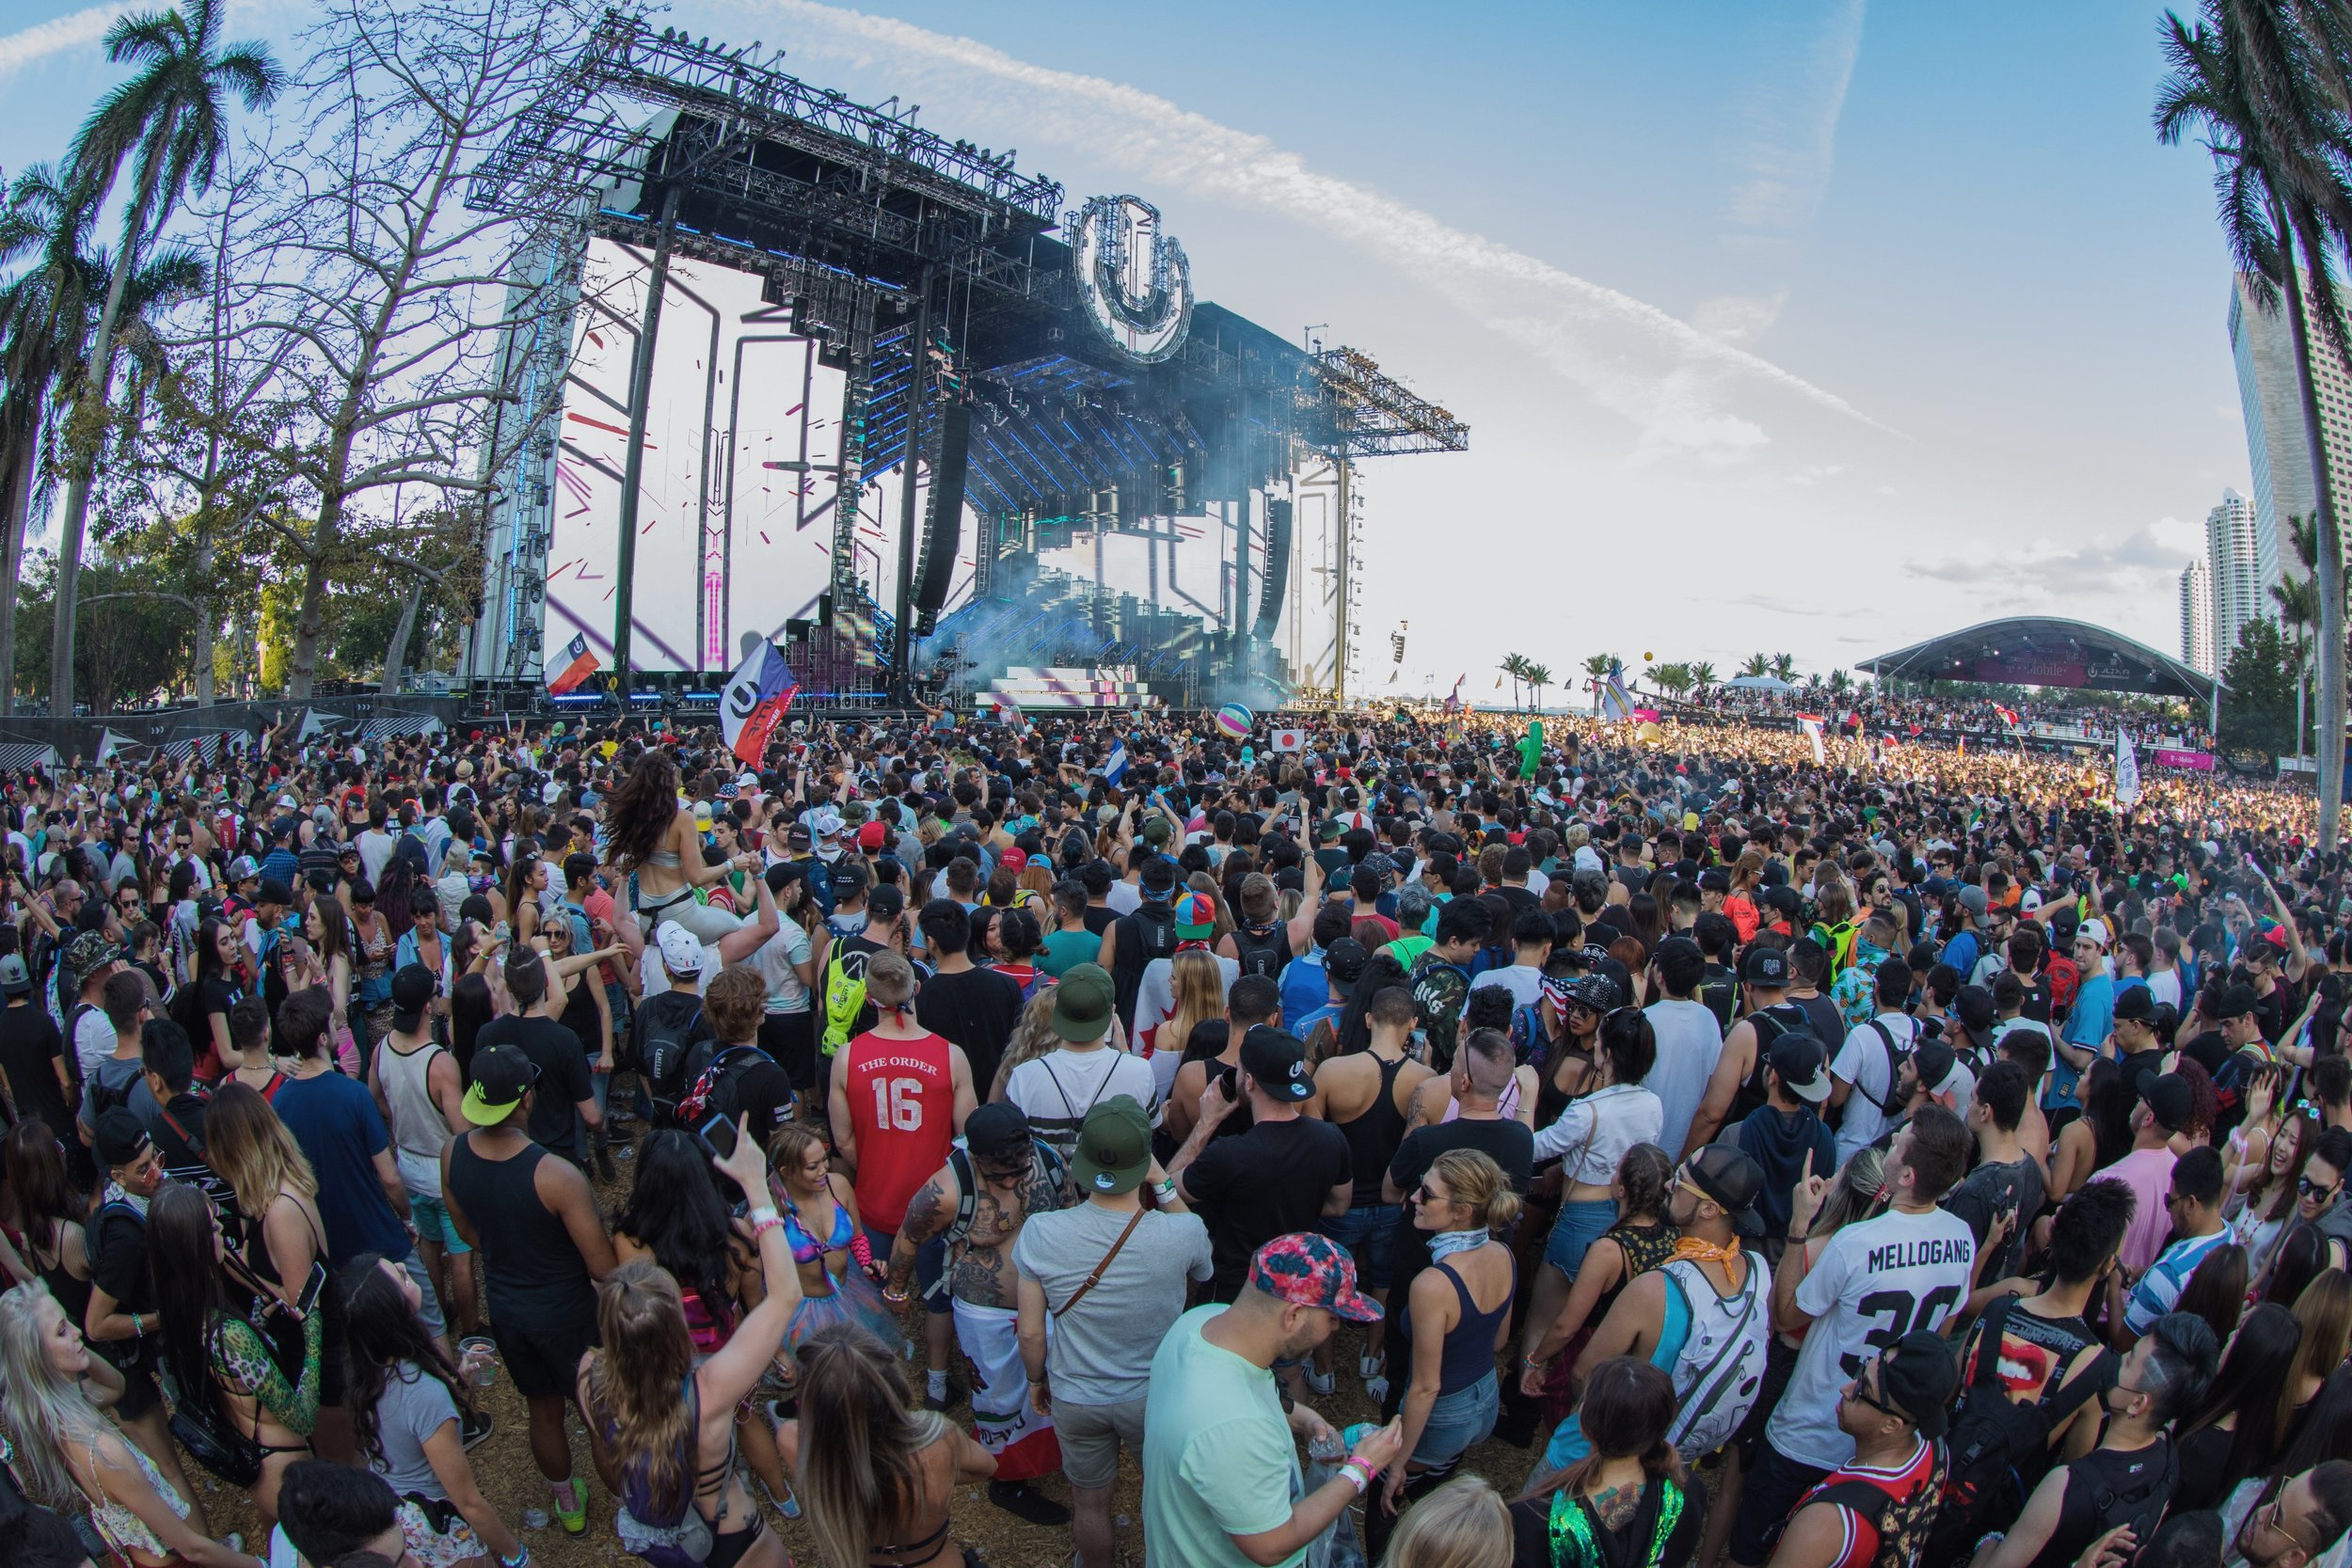 UMF Main Stage